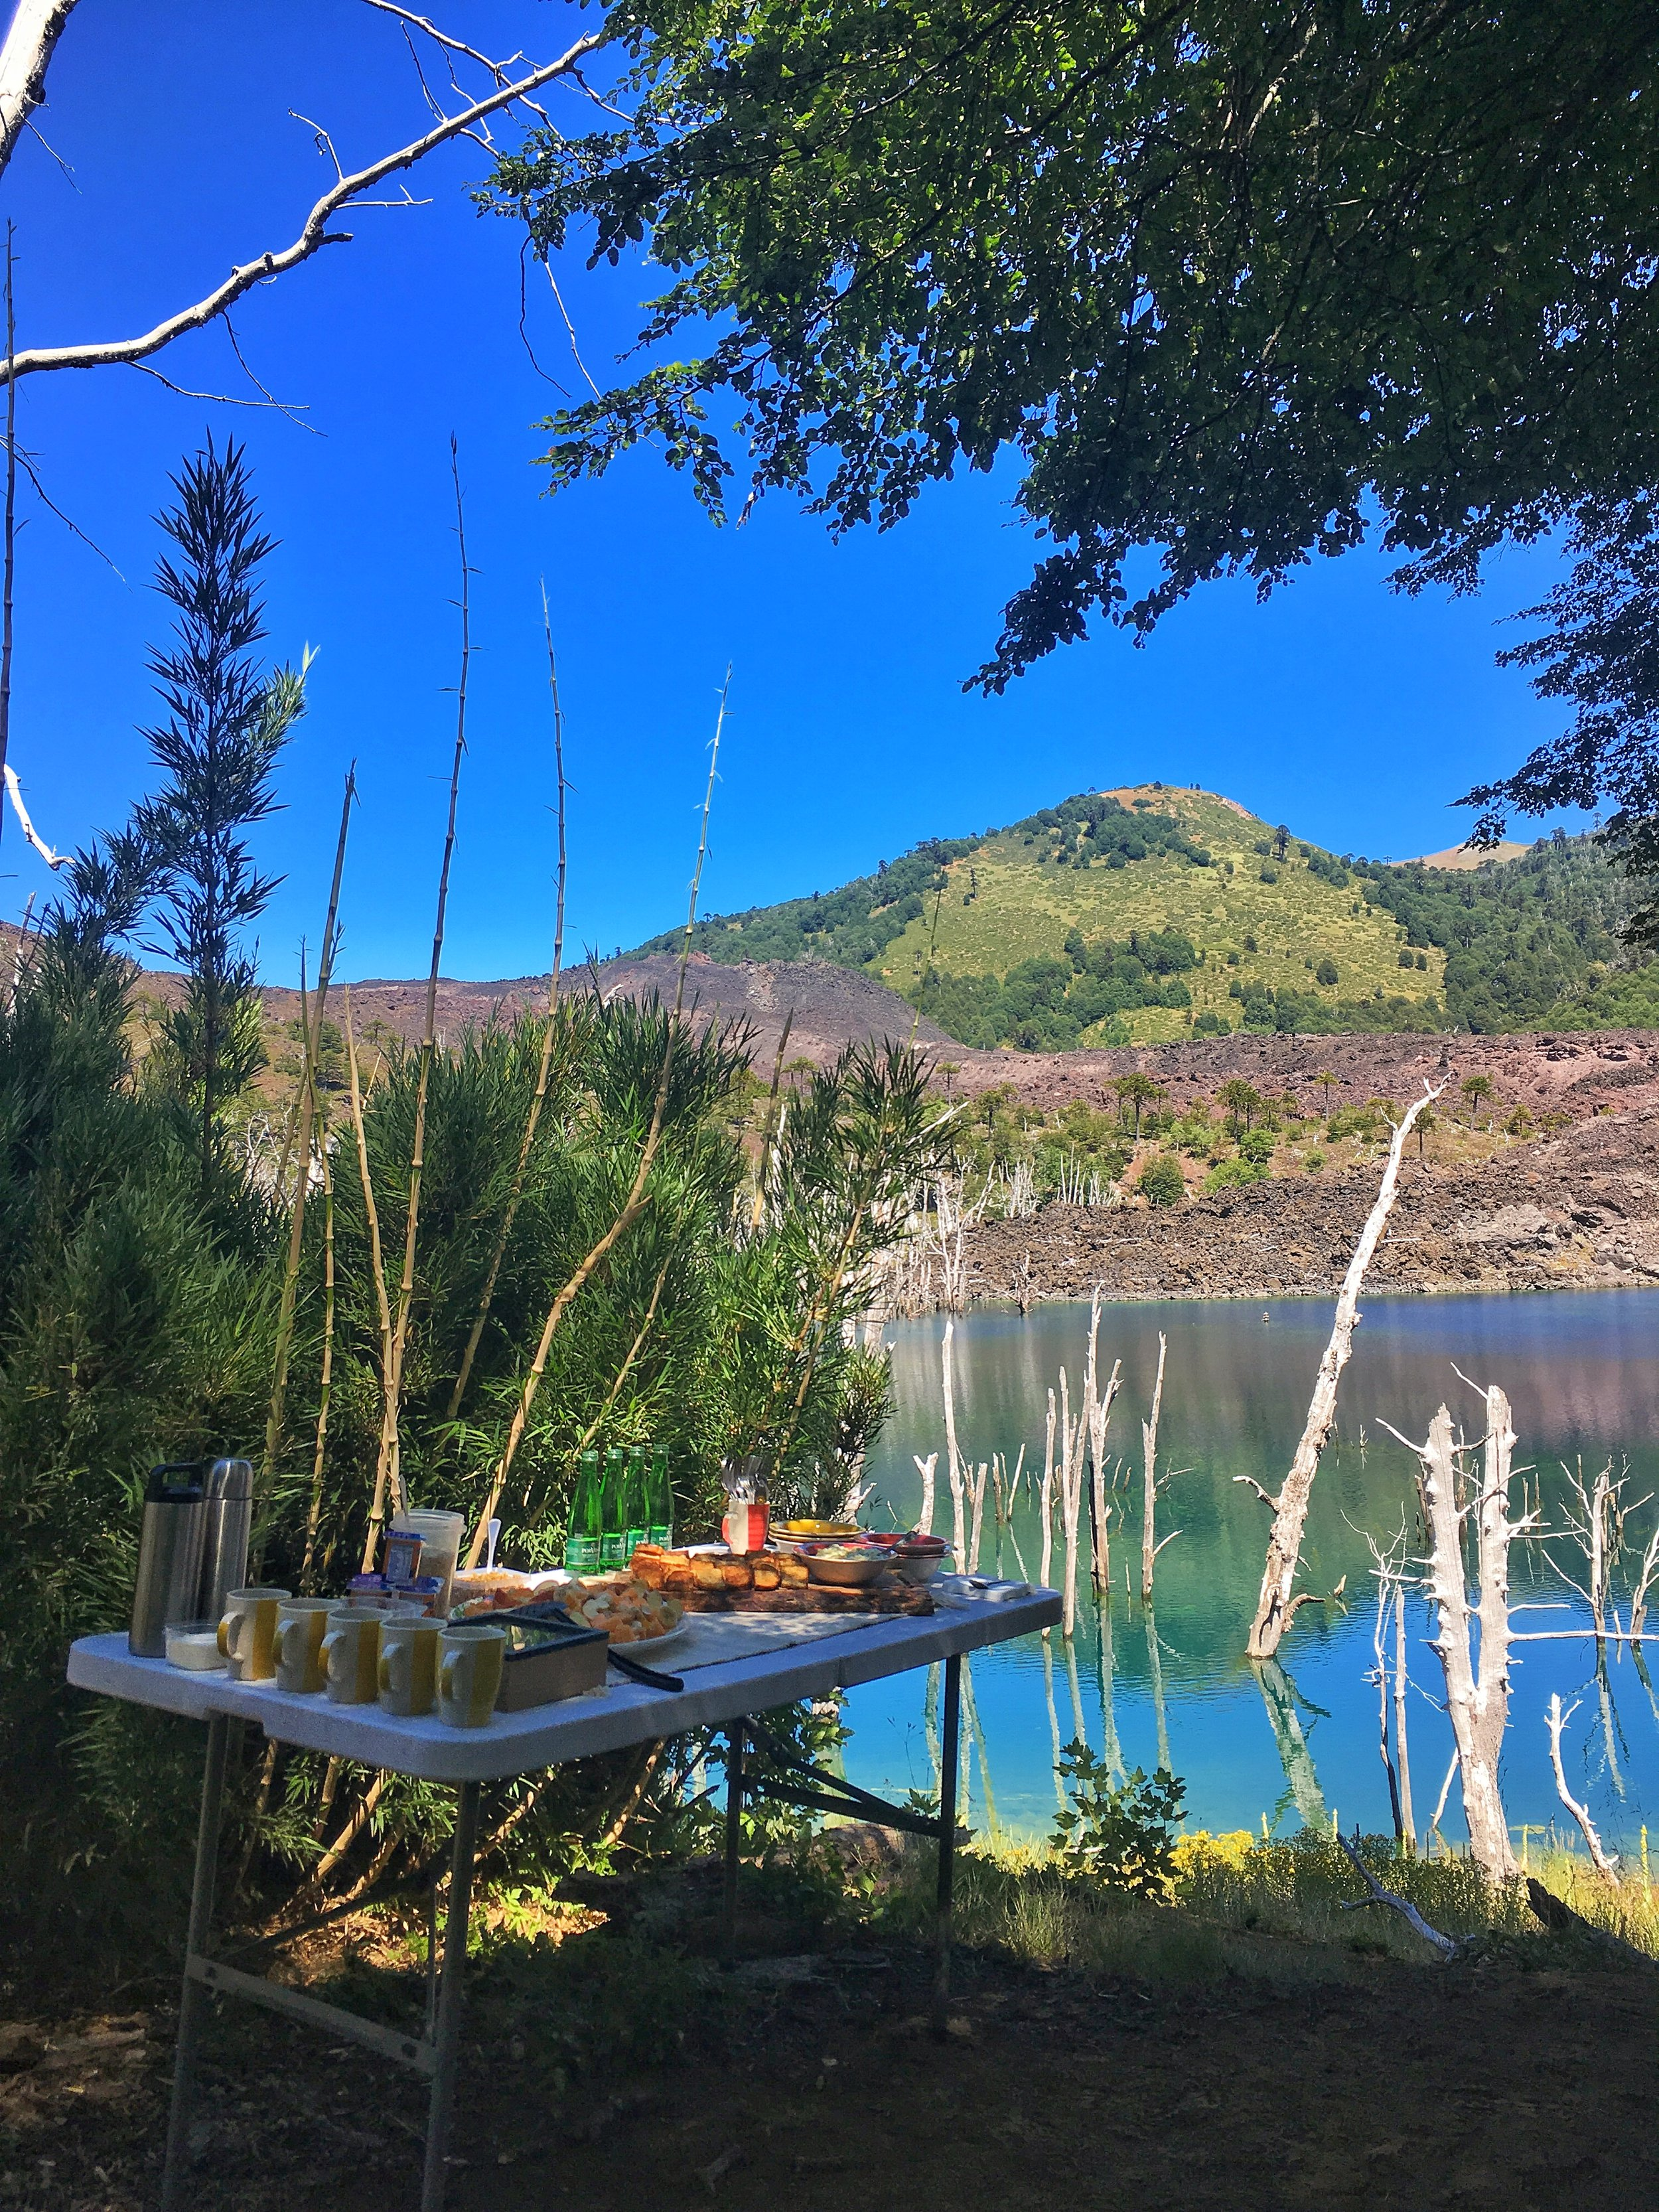 Catered breakfast on a volcanic lake after the surise photo-session